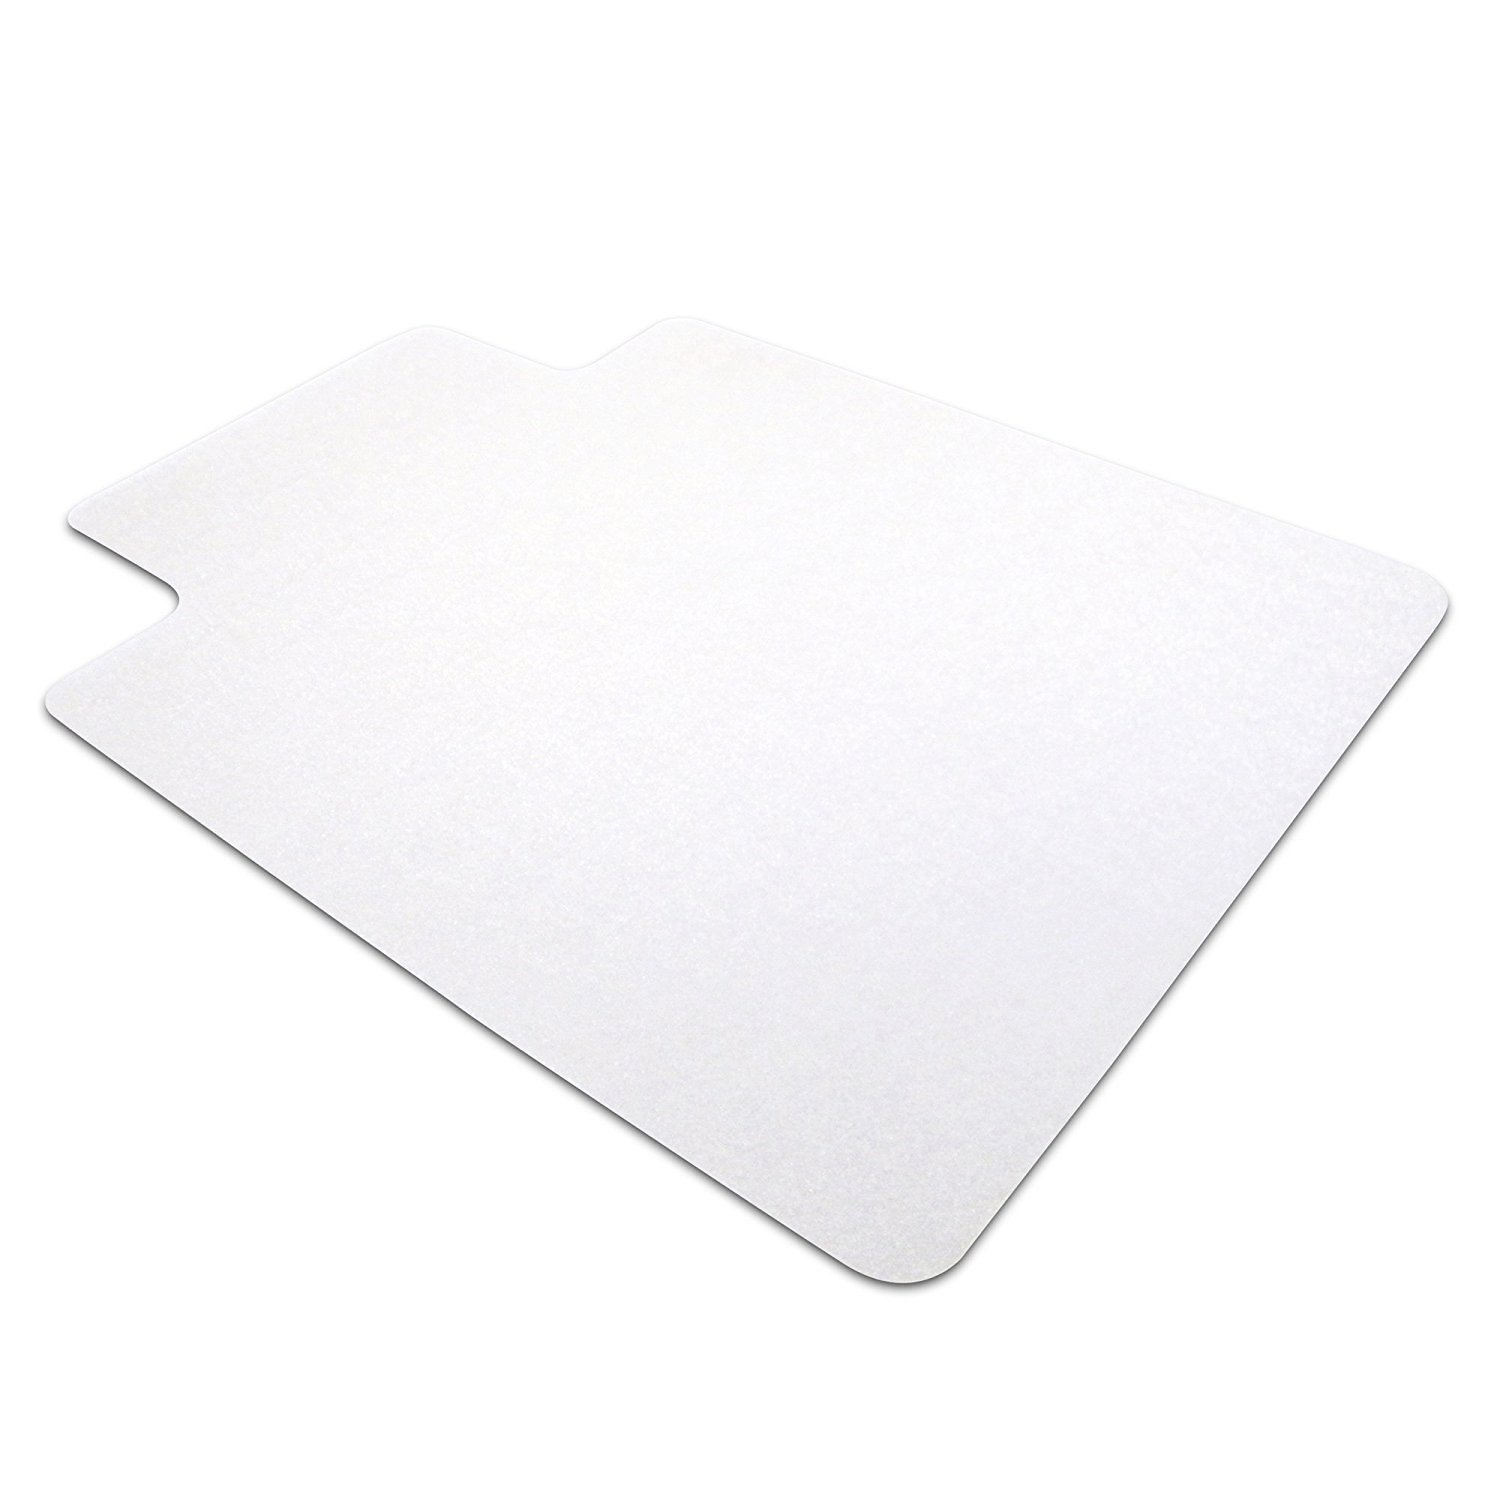 carpet chair mats foam cushion inserts for chairs home office non slip pvc desk mat floor